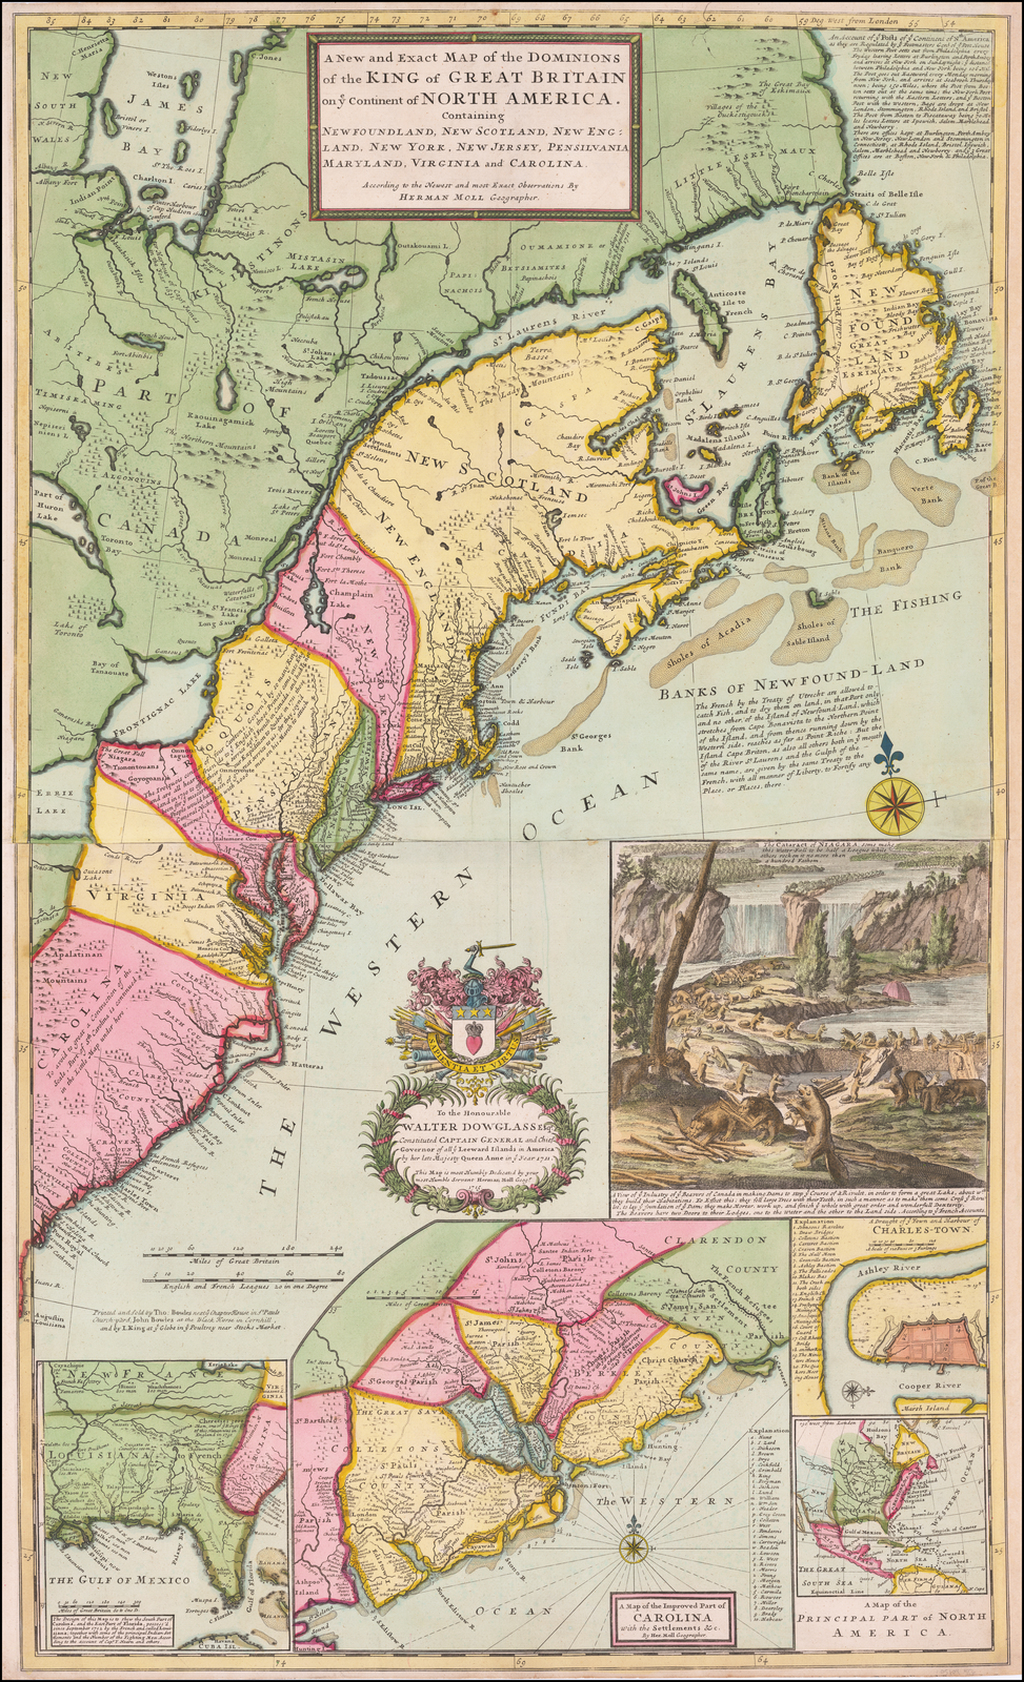 A New and Exact Map of the Dominions of the King of Great Britain on ye Continent of North America . . .  By Herman Moll